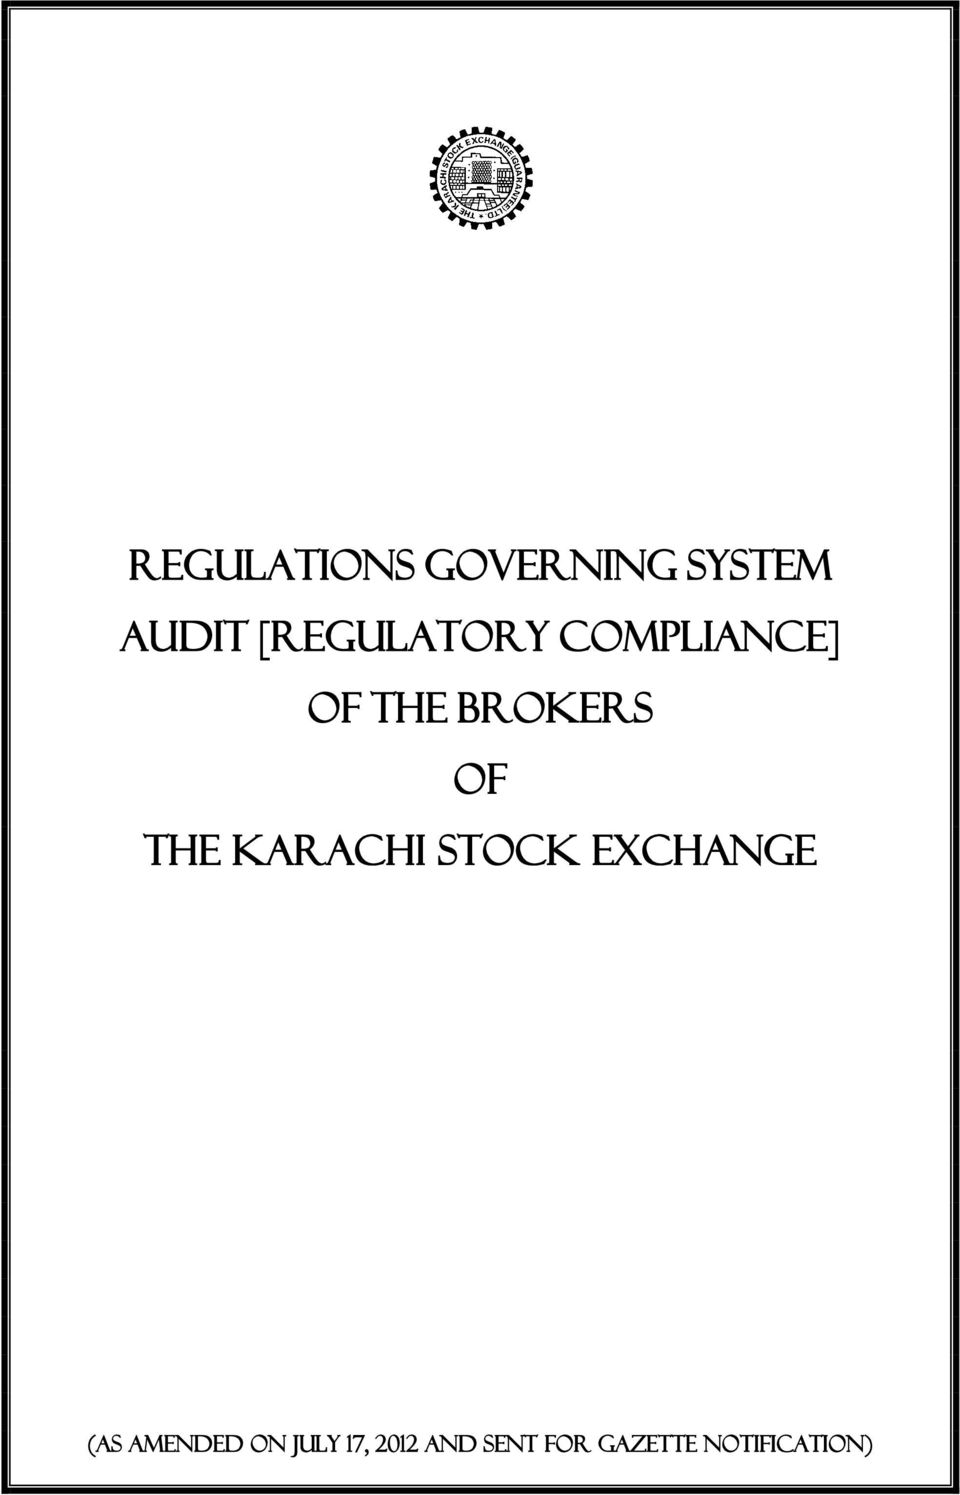 THE KARACHI STOCK EXCHANGE (As amended on